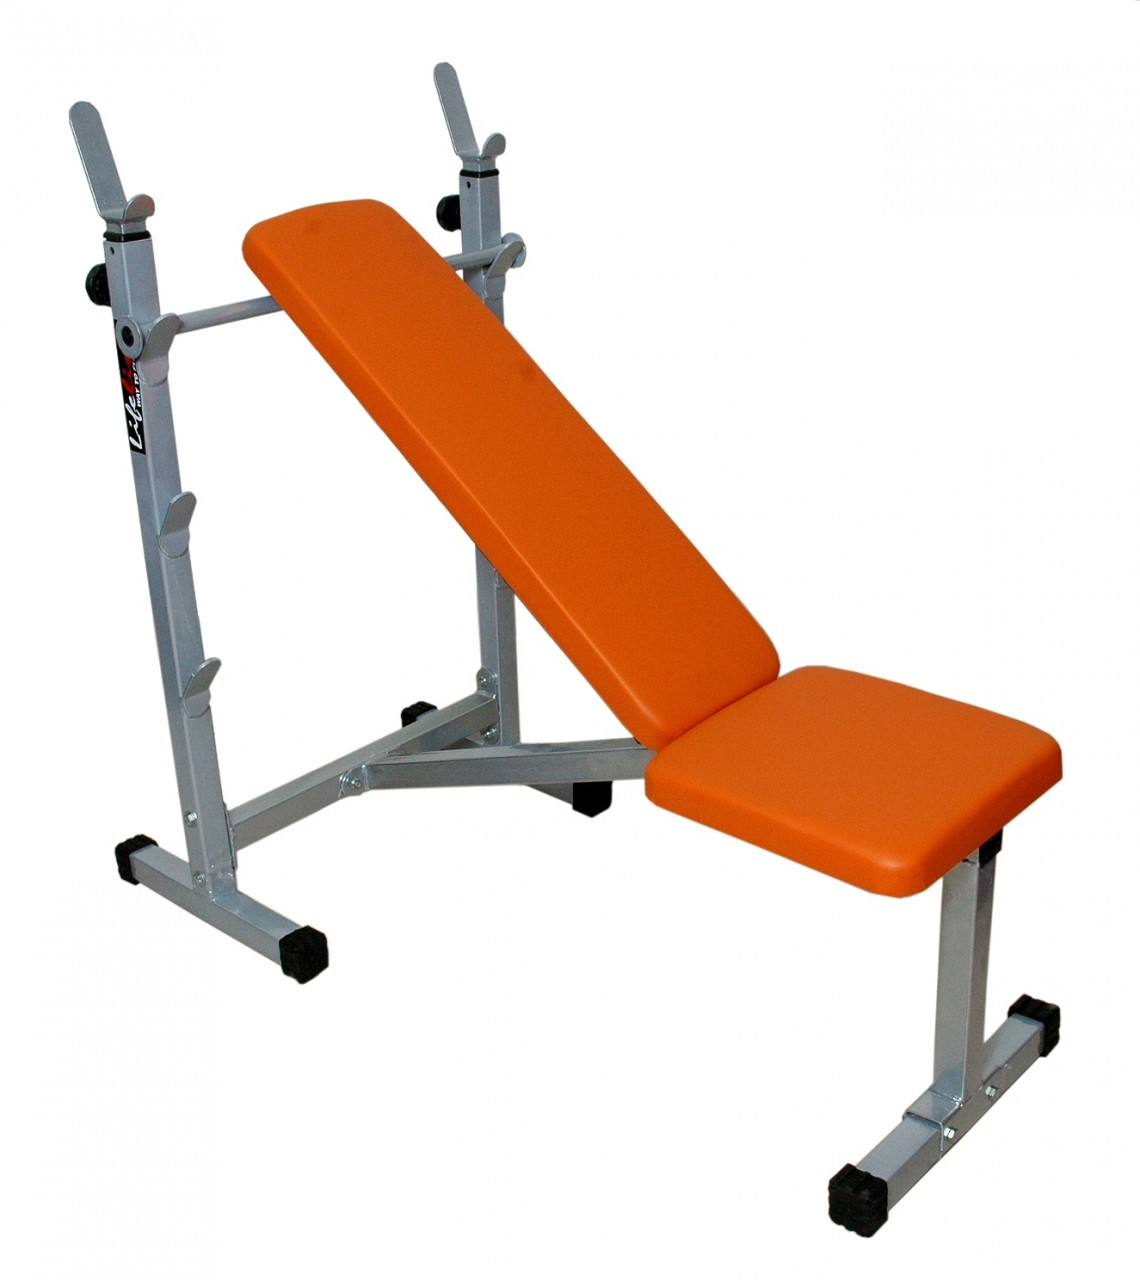 Buy Lifeline Multipurpose Weight Lifting Bench 307 Online